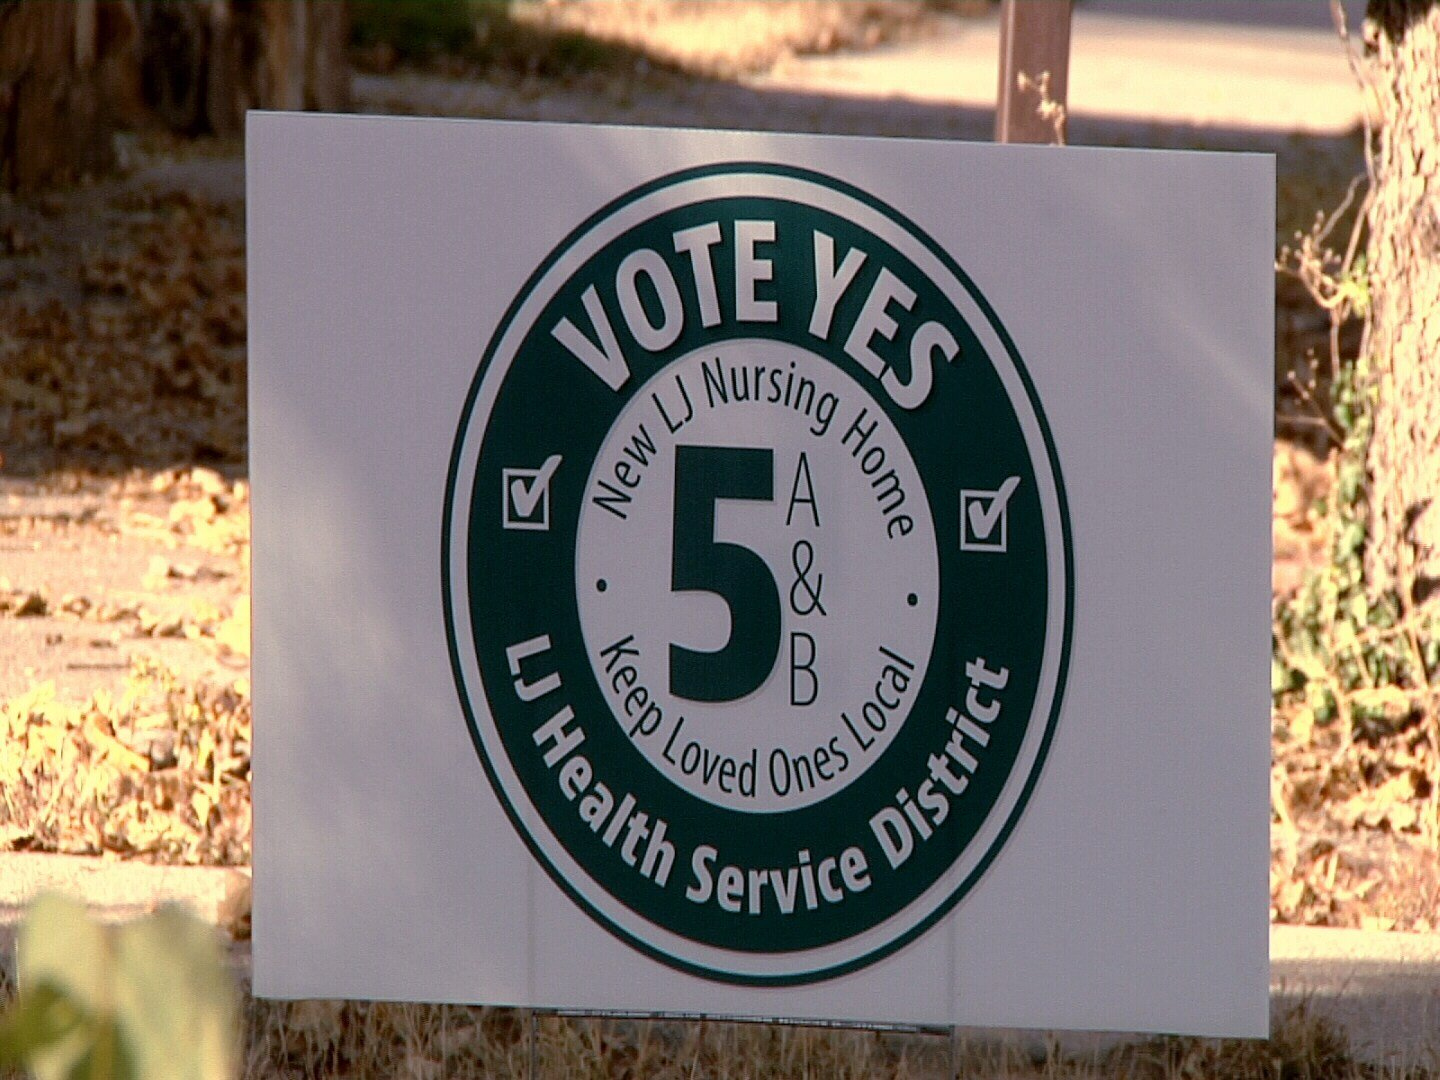 A campaign yard sign for the Yes on 5A and 5B campaign